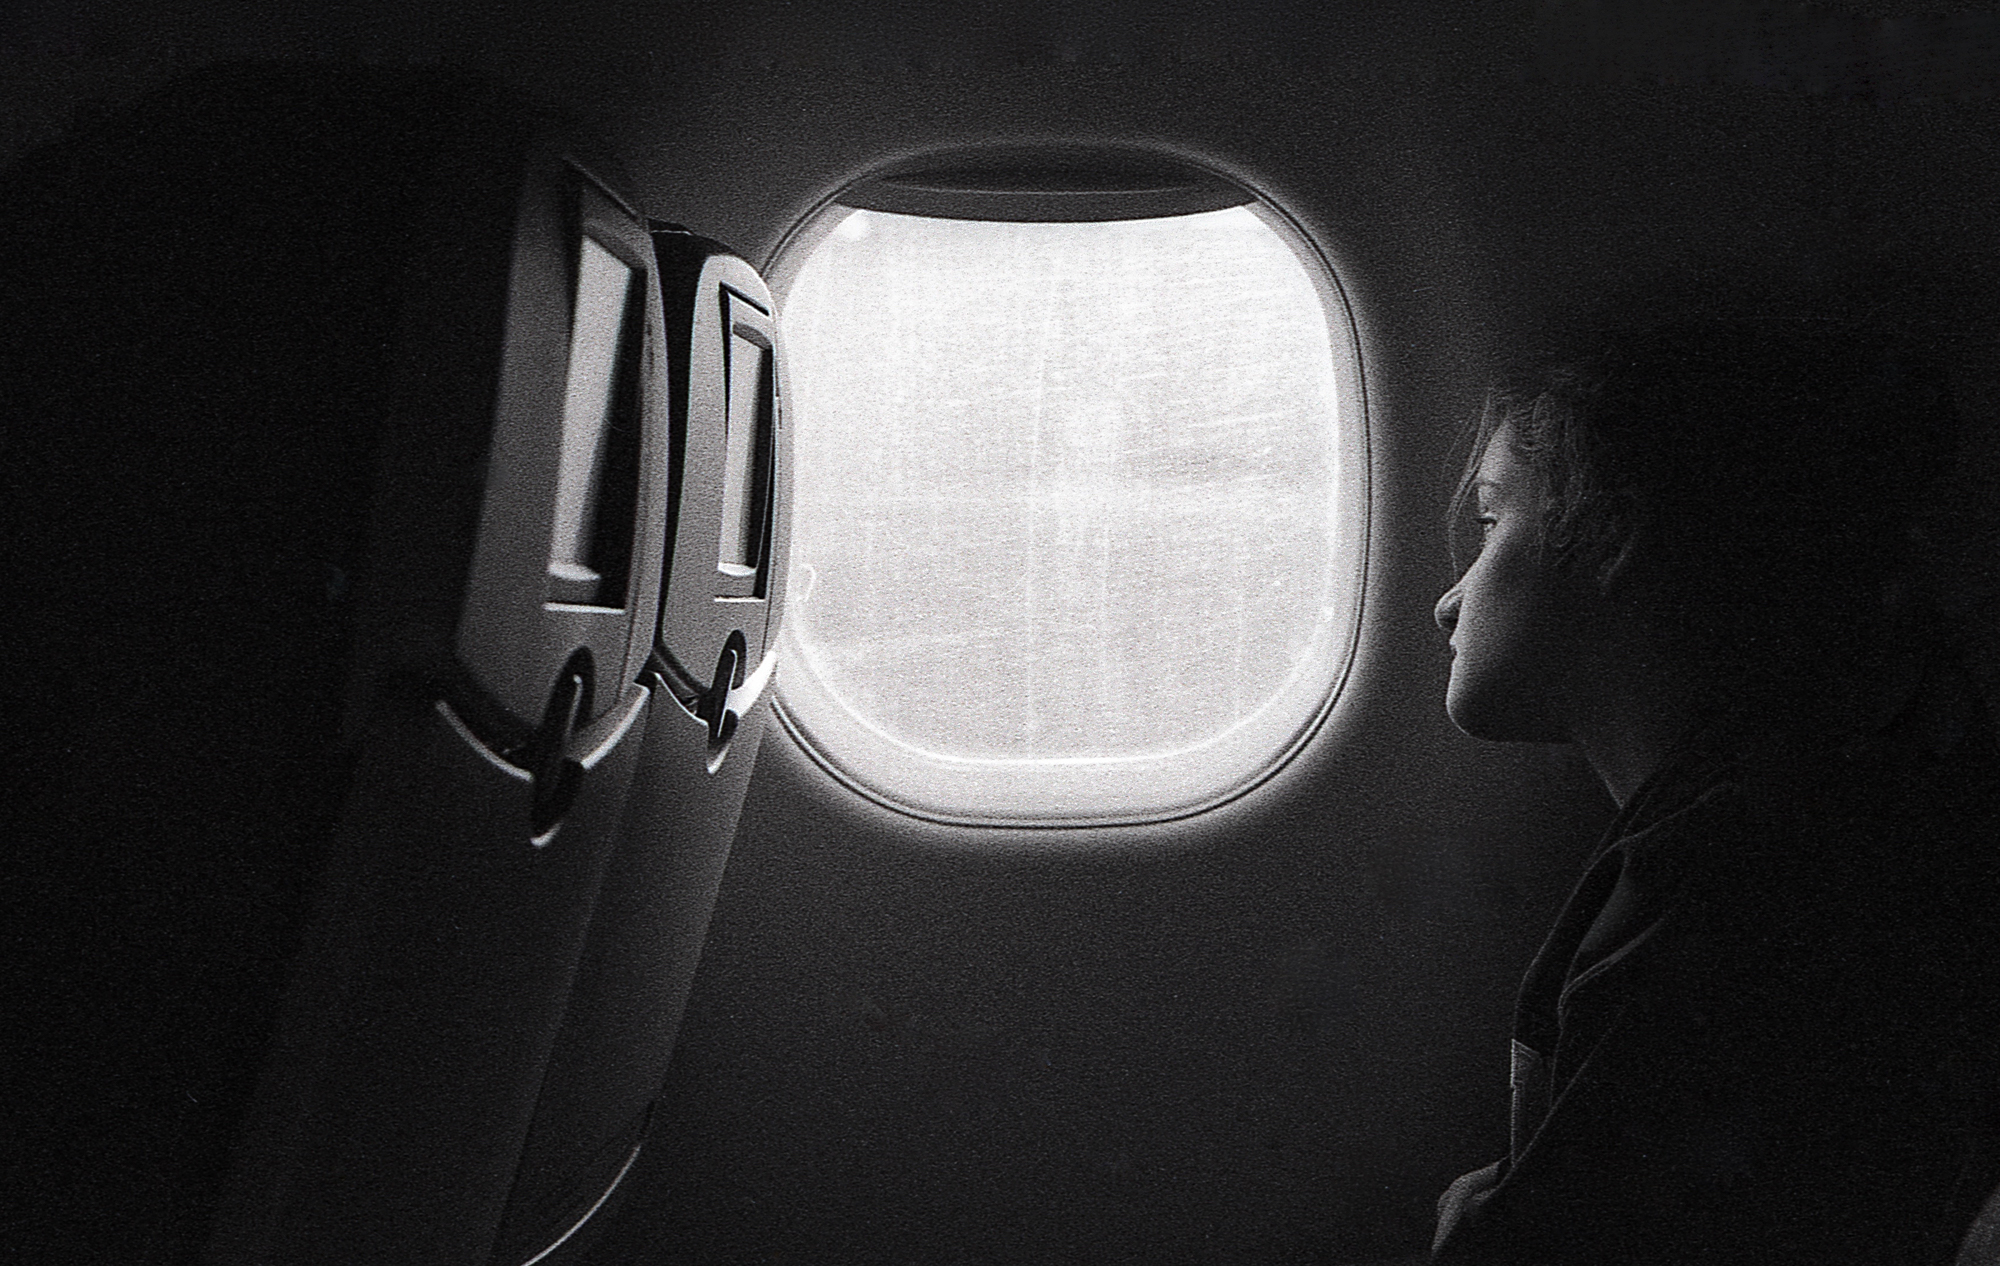 Madi Kneipp, 14, peers out the window on her flight from Raleigh, NC to Fort Lauderdale, FL on November 23, 2016. (Delta 400 pushed to 1600)